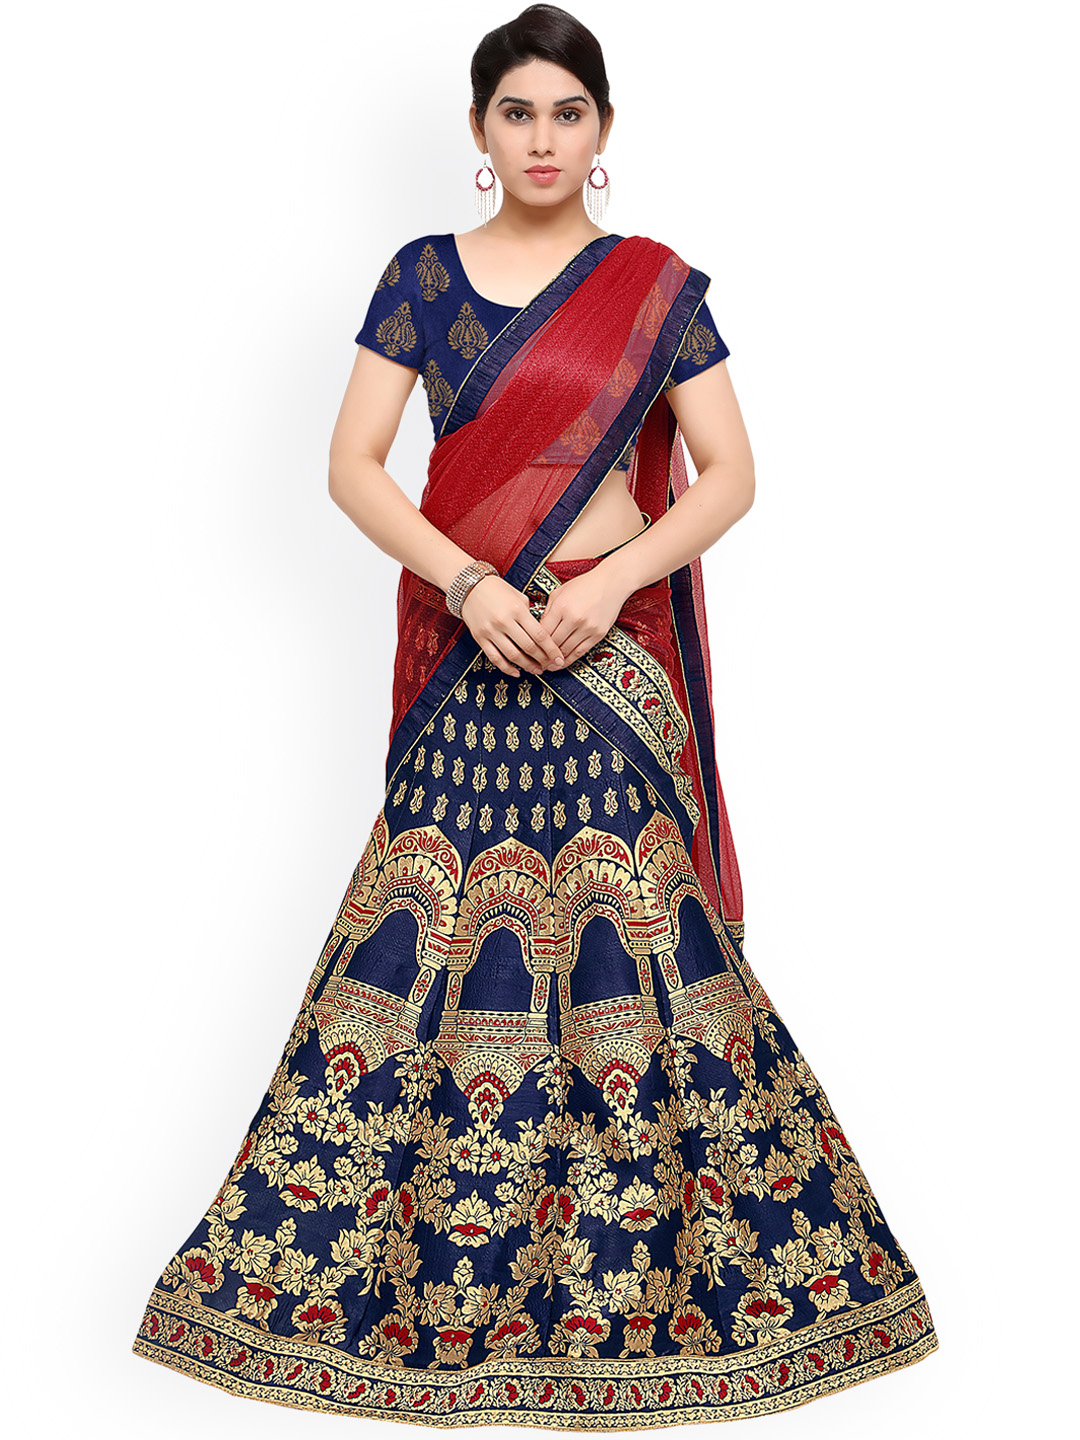 Styles Closet Blue Patterned Jacquard Lehenga Choli with Dupatta Price in India